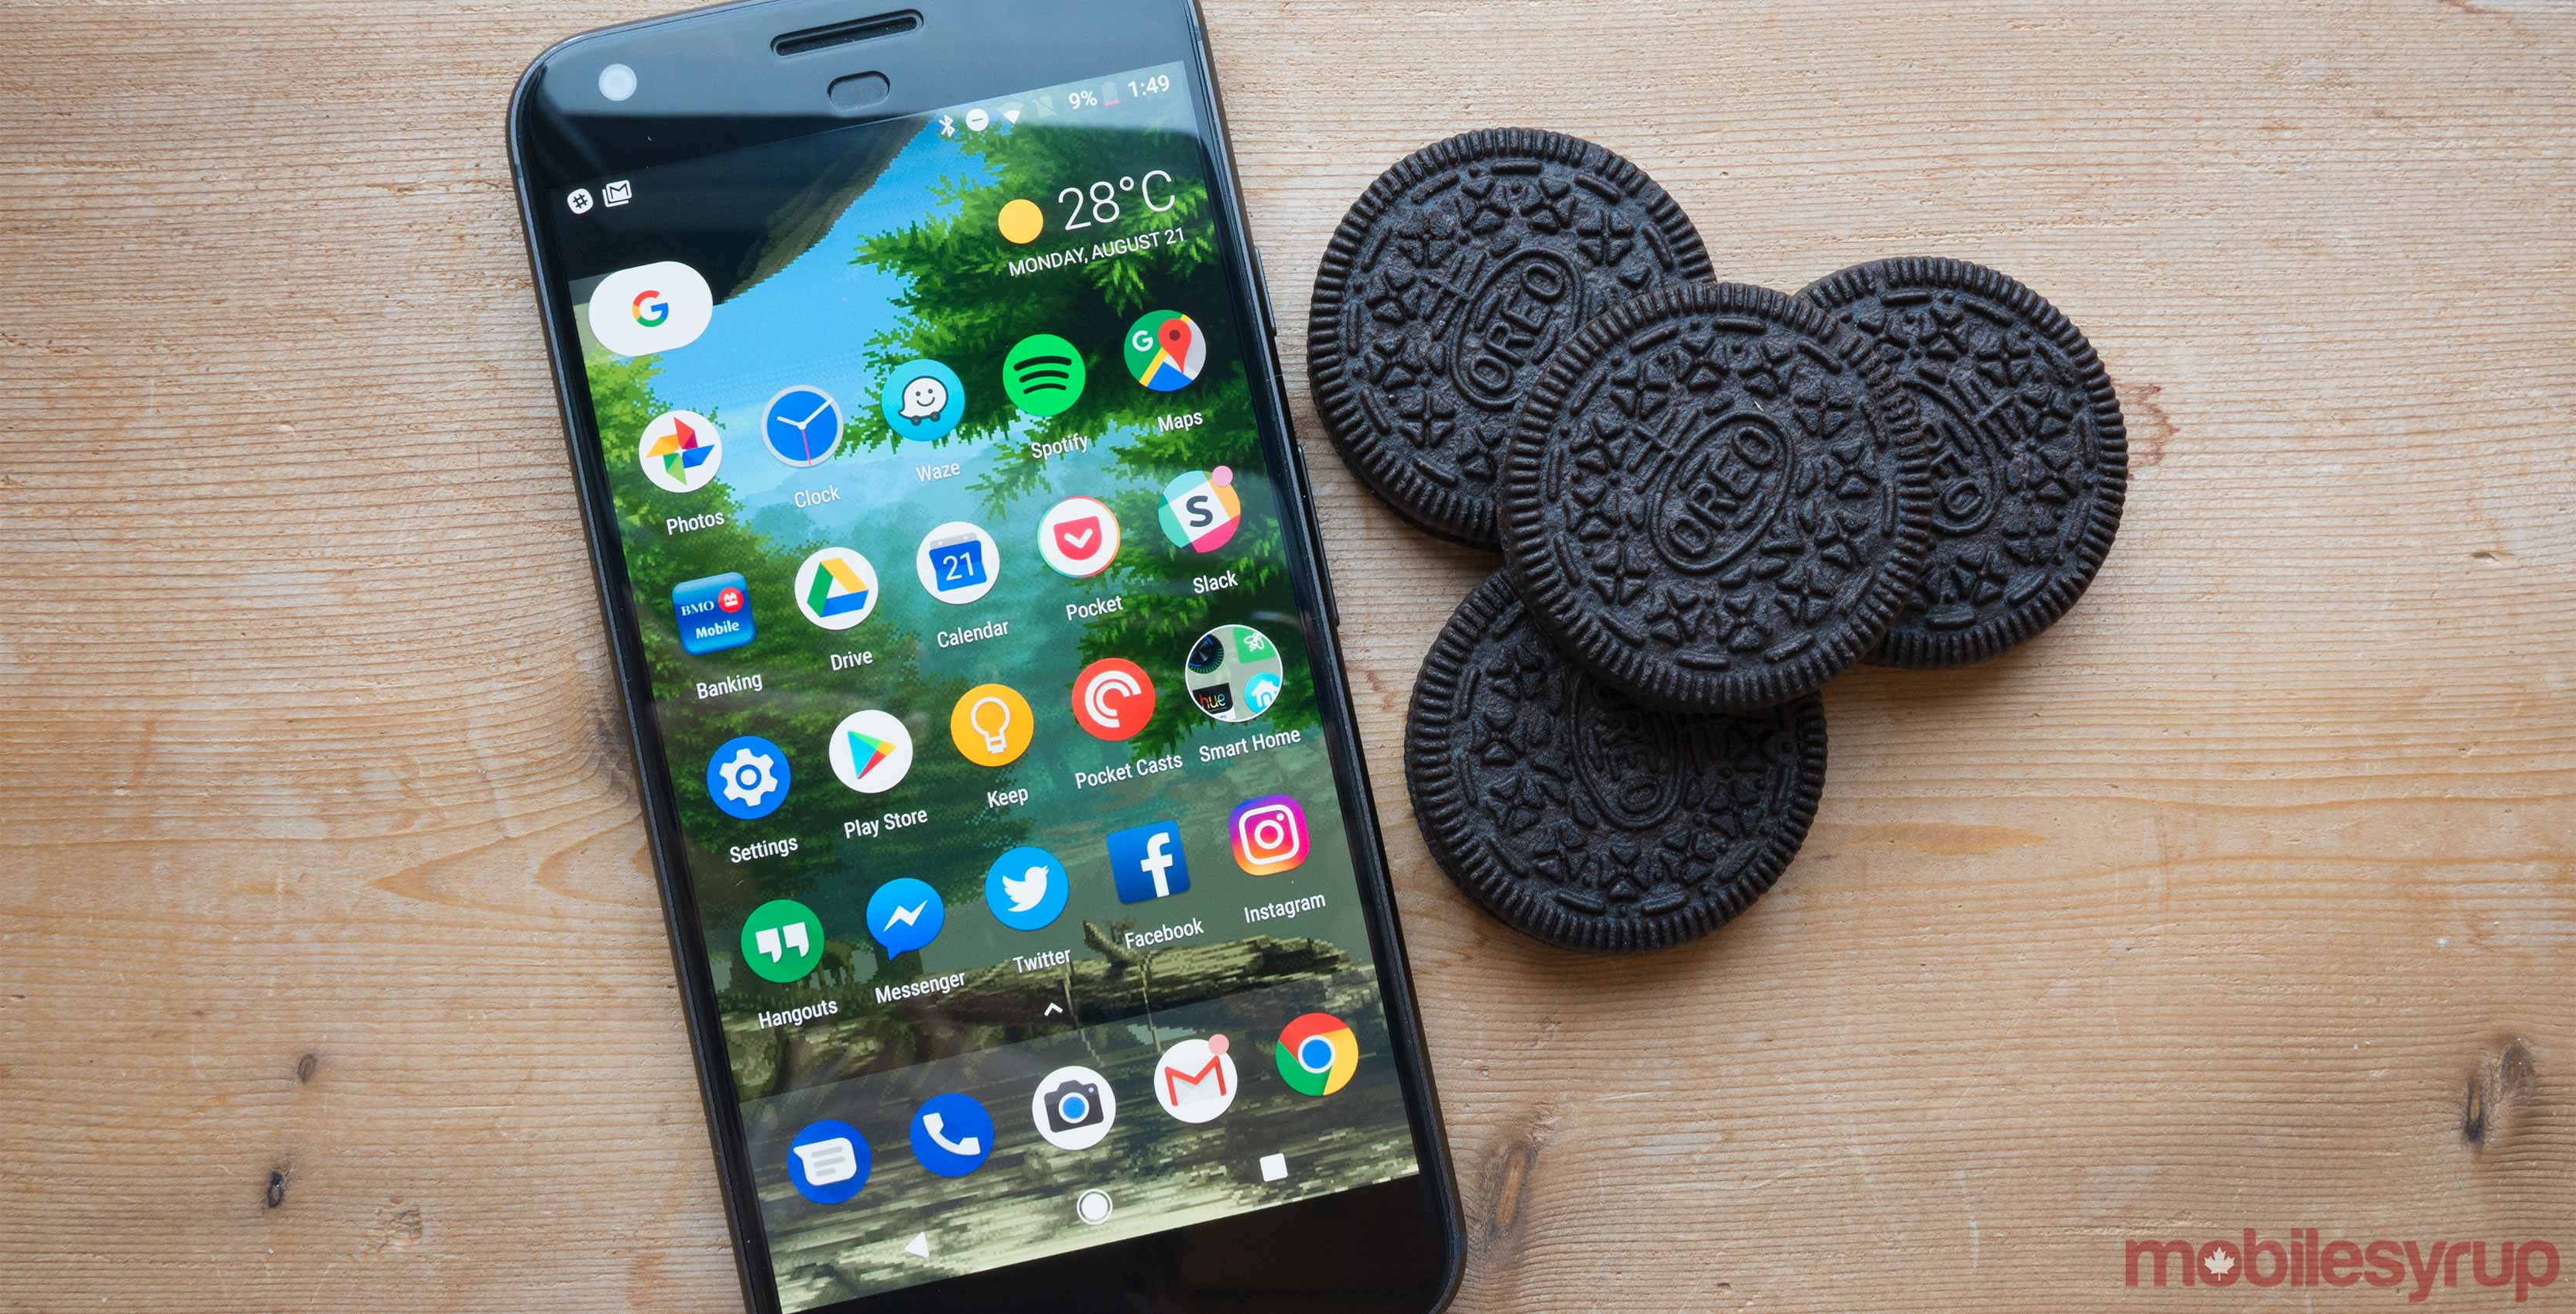 New Android O operating system is delightfully named Oreo